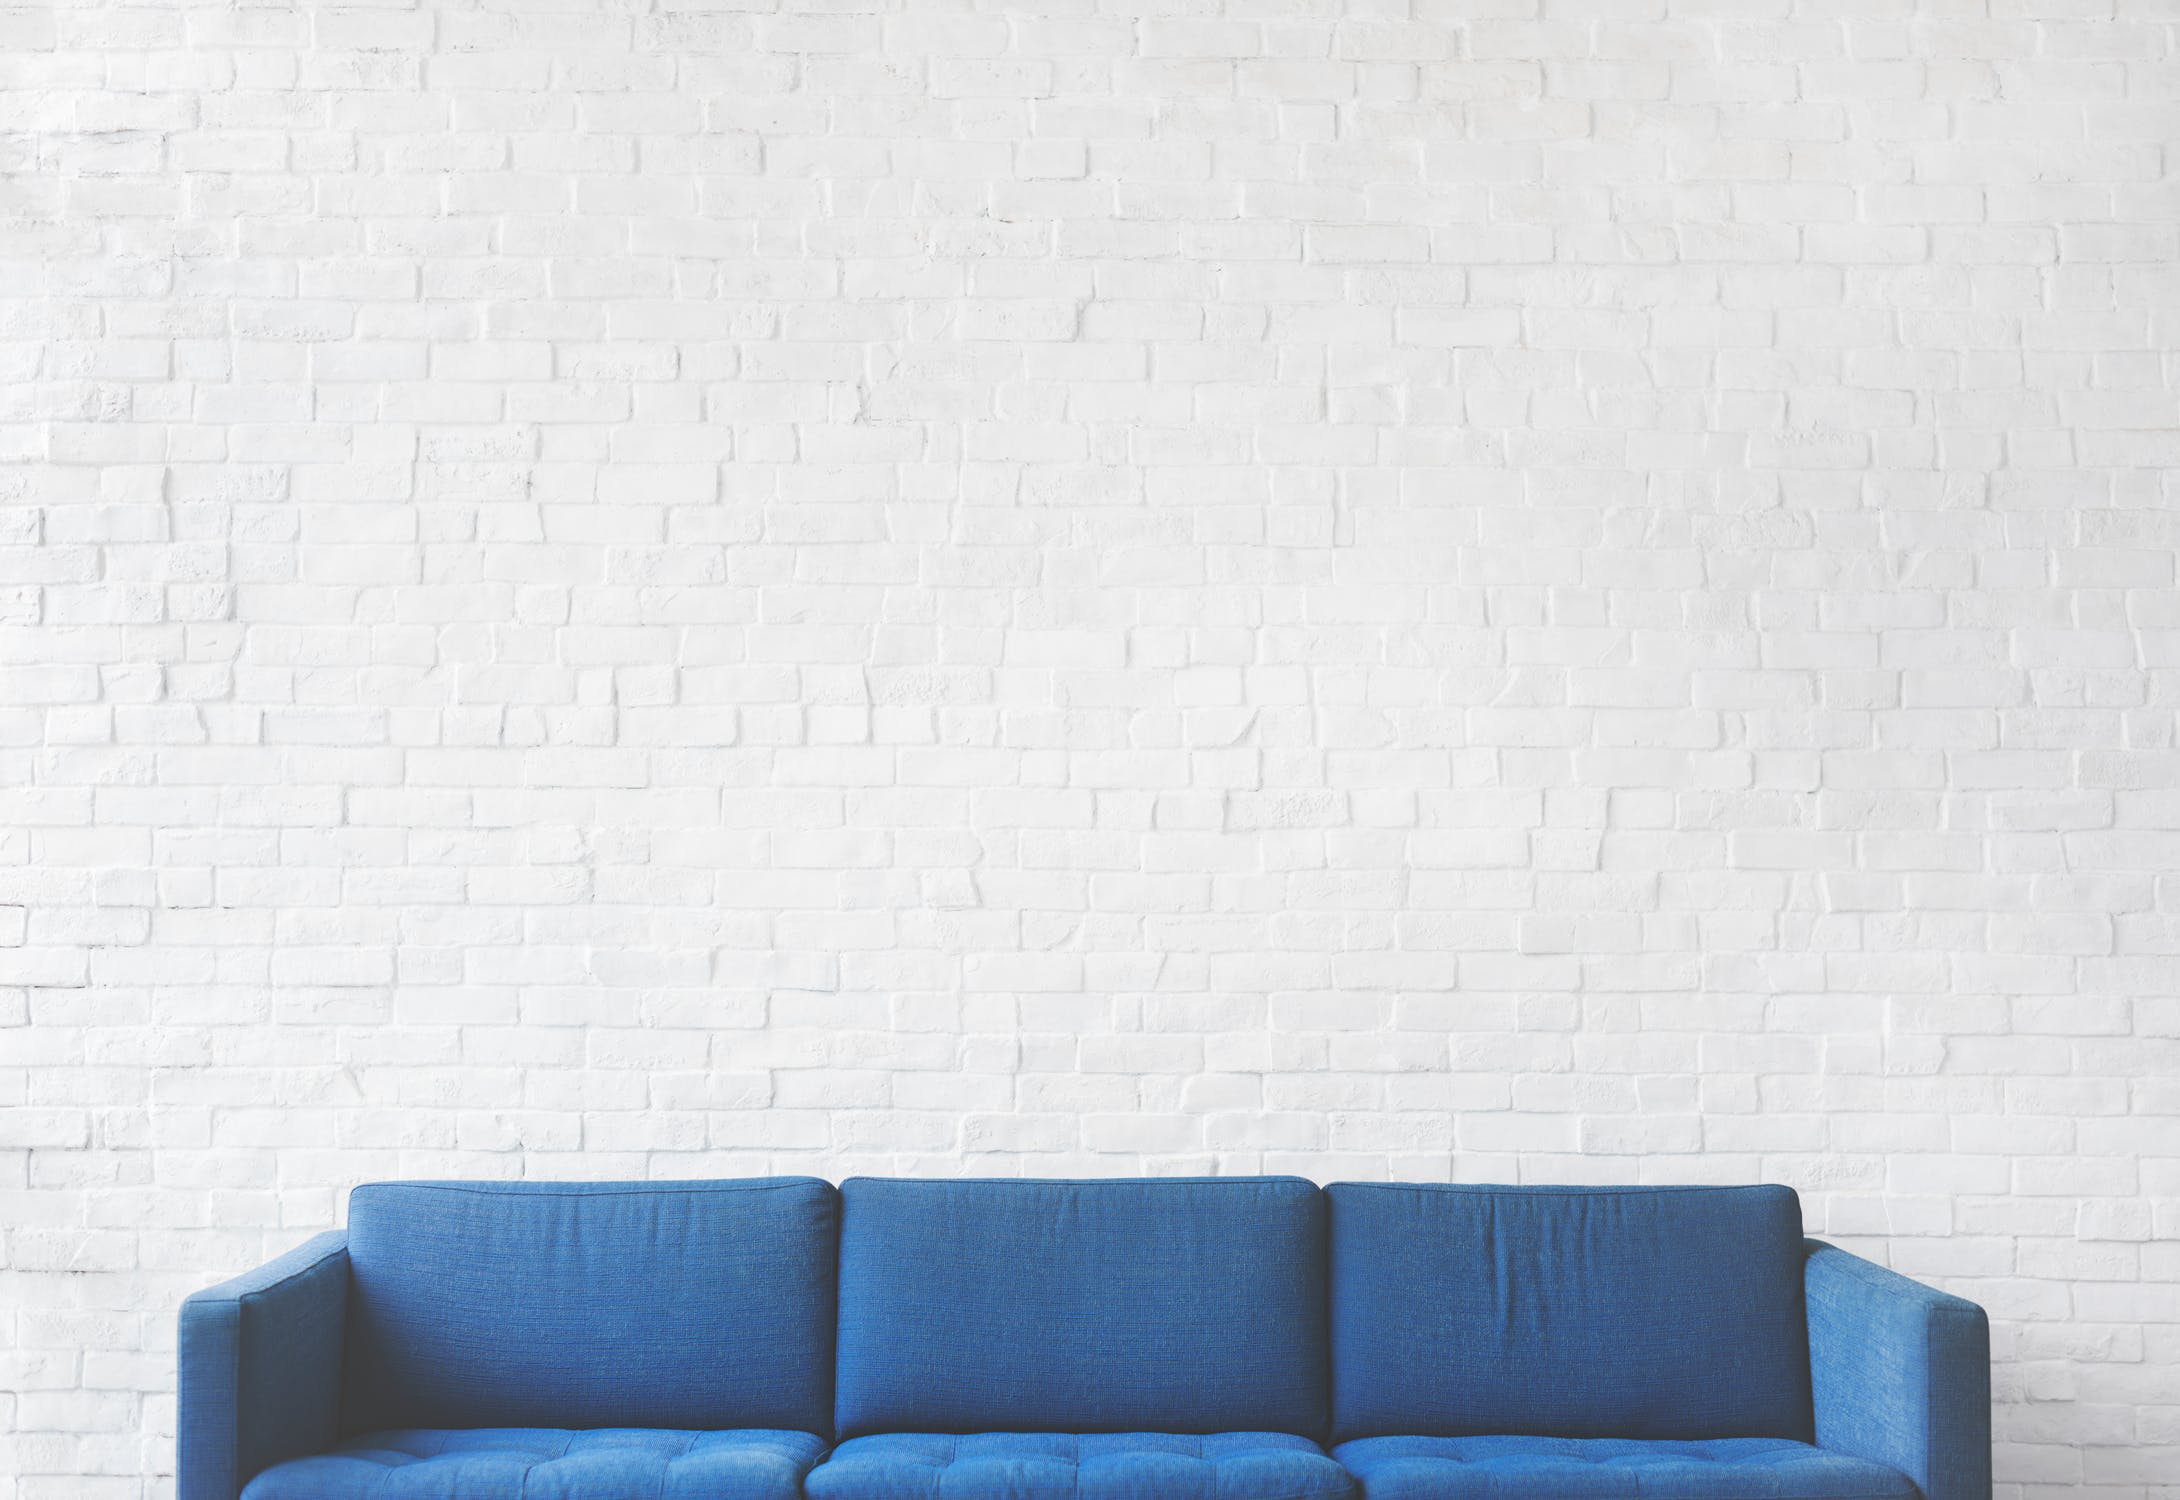 A blue couch